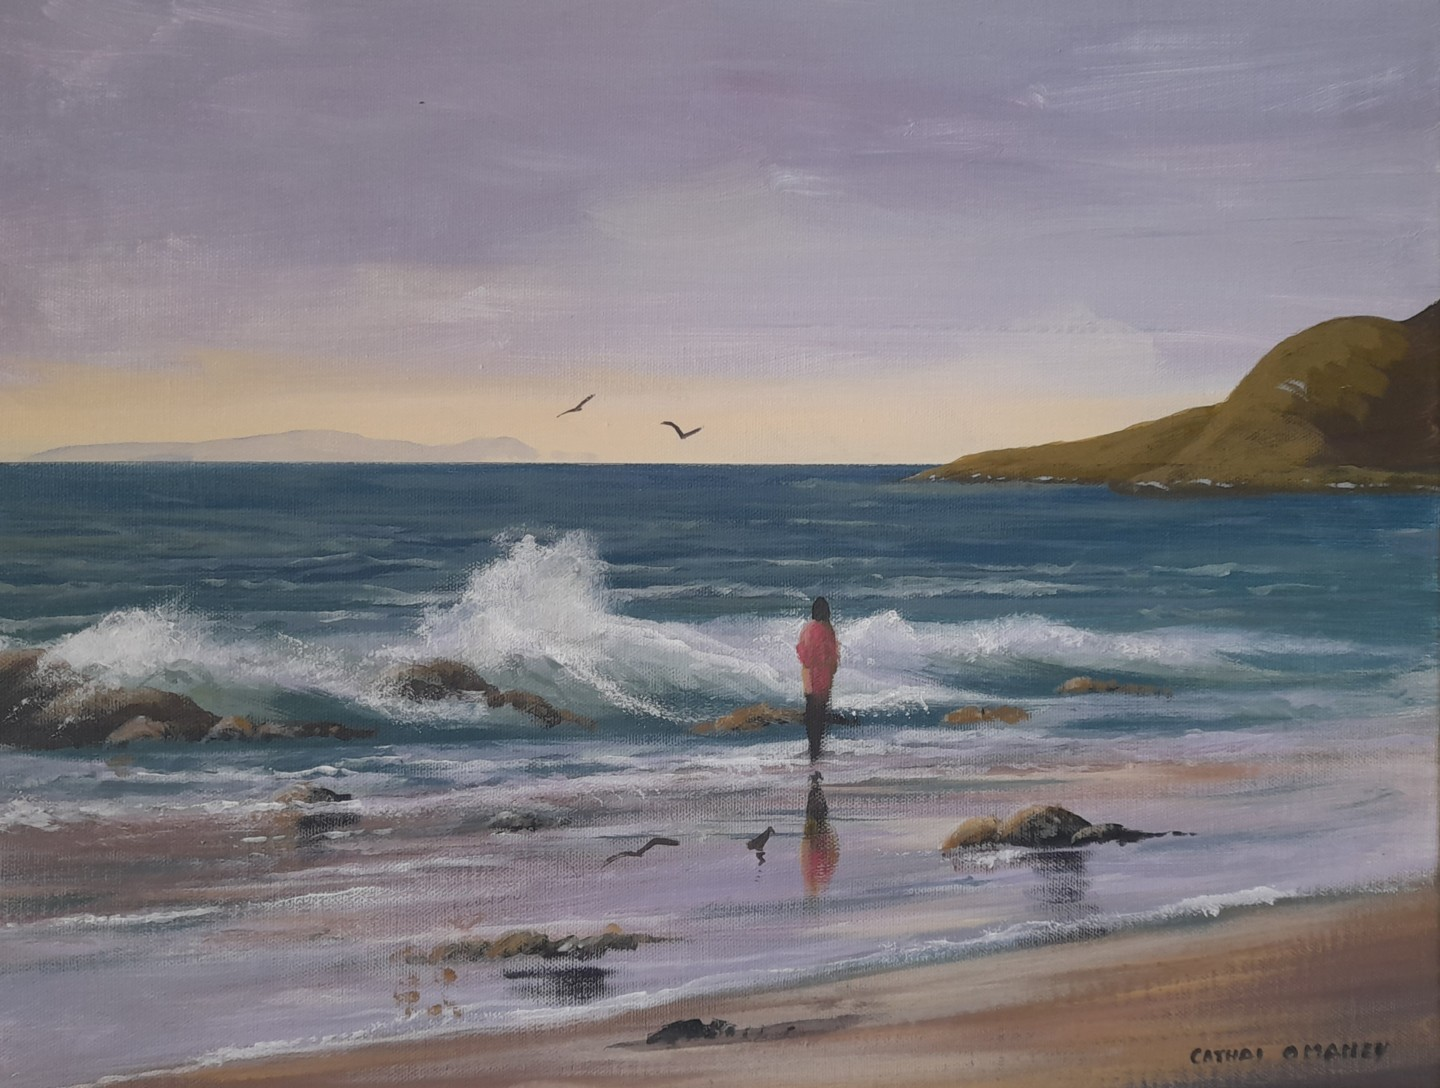 Cathal O Malley - Waves in cleggan